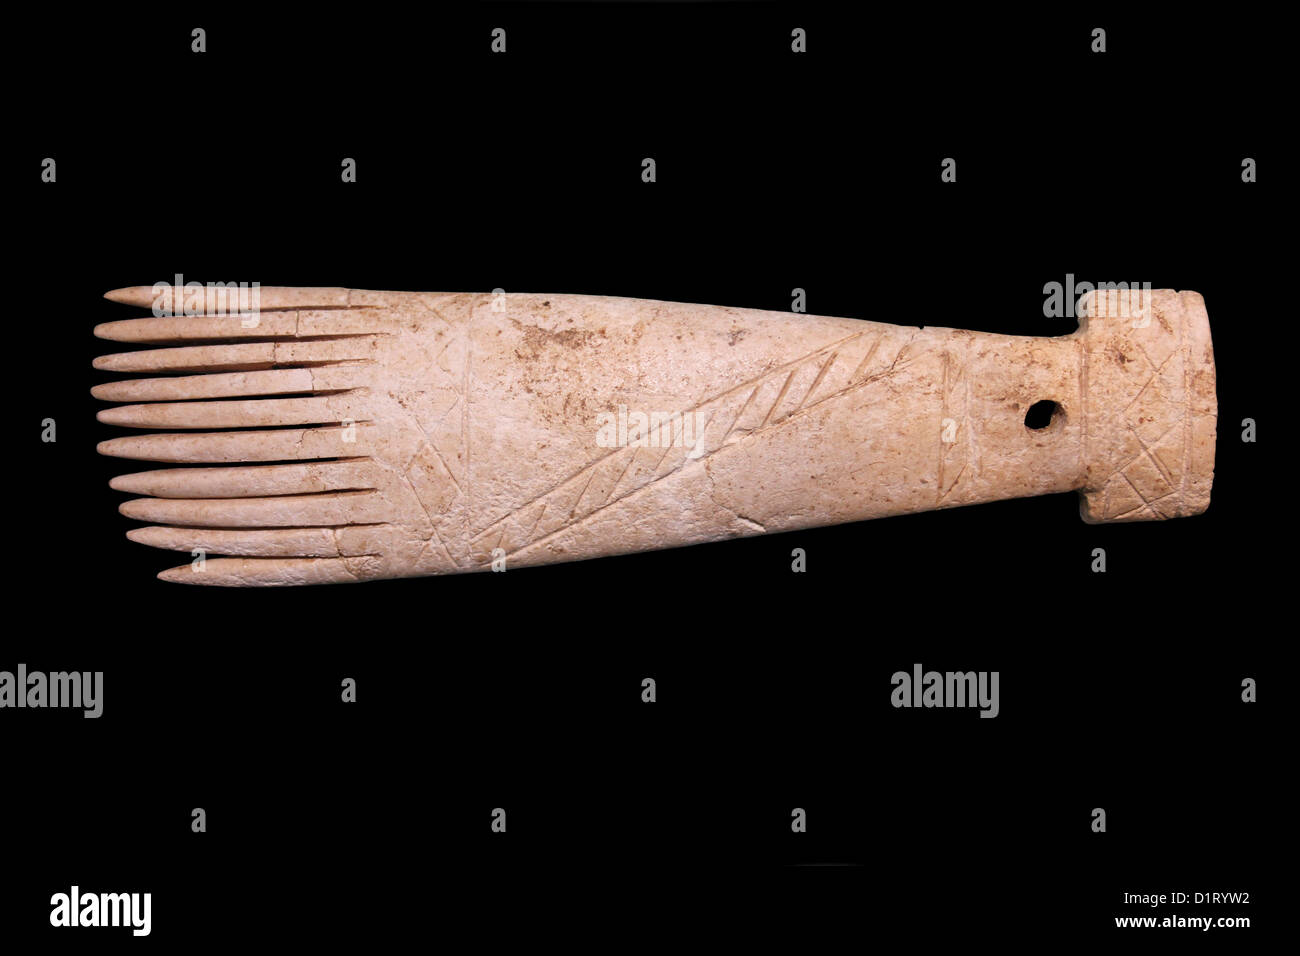 Iron Age Weaving Comb - Stock Image